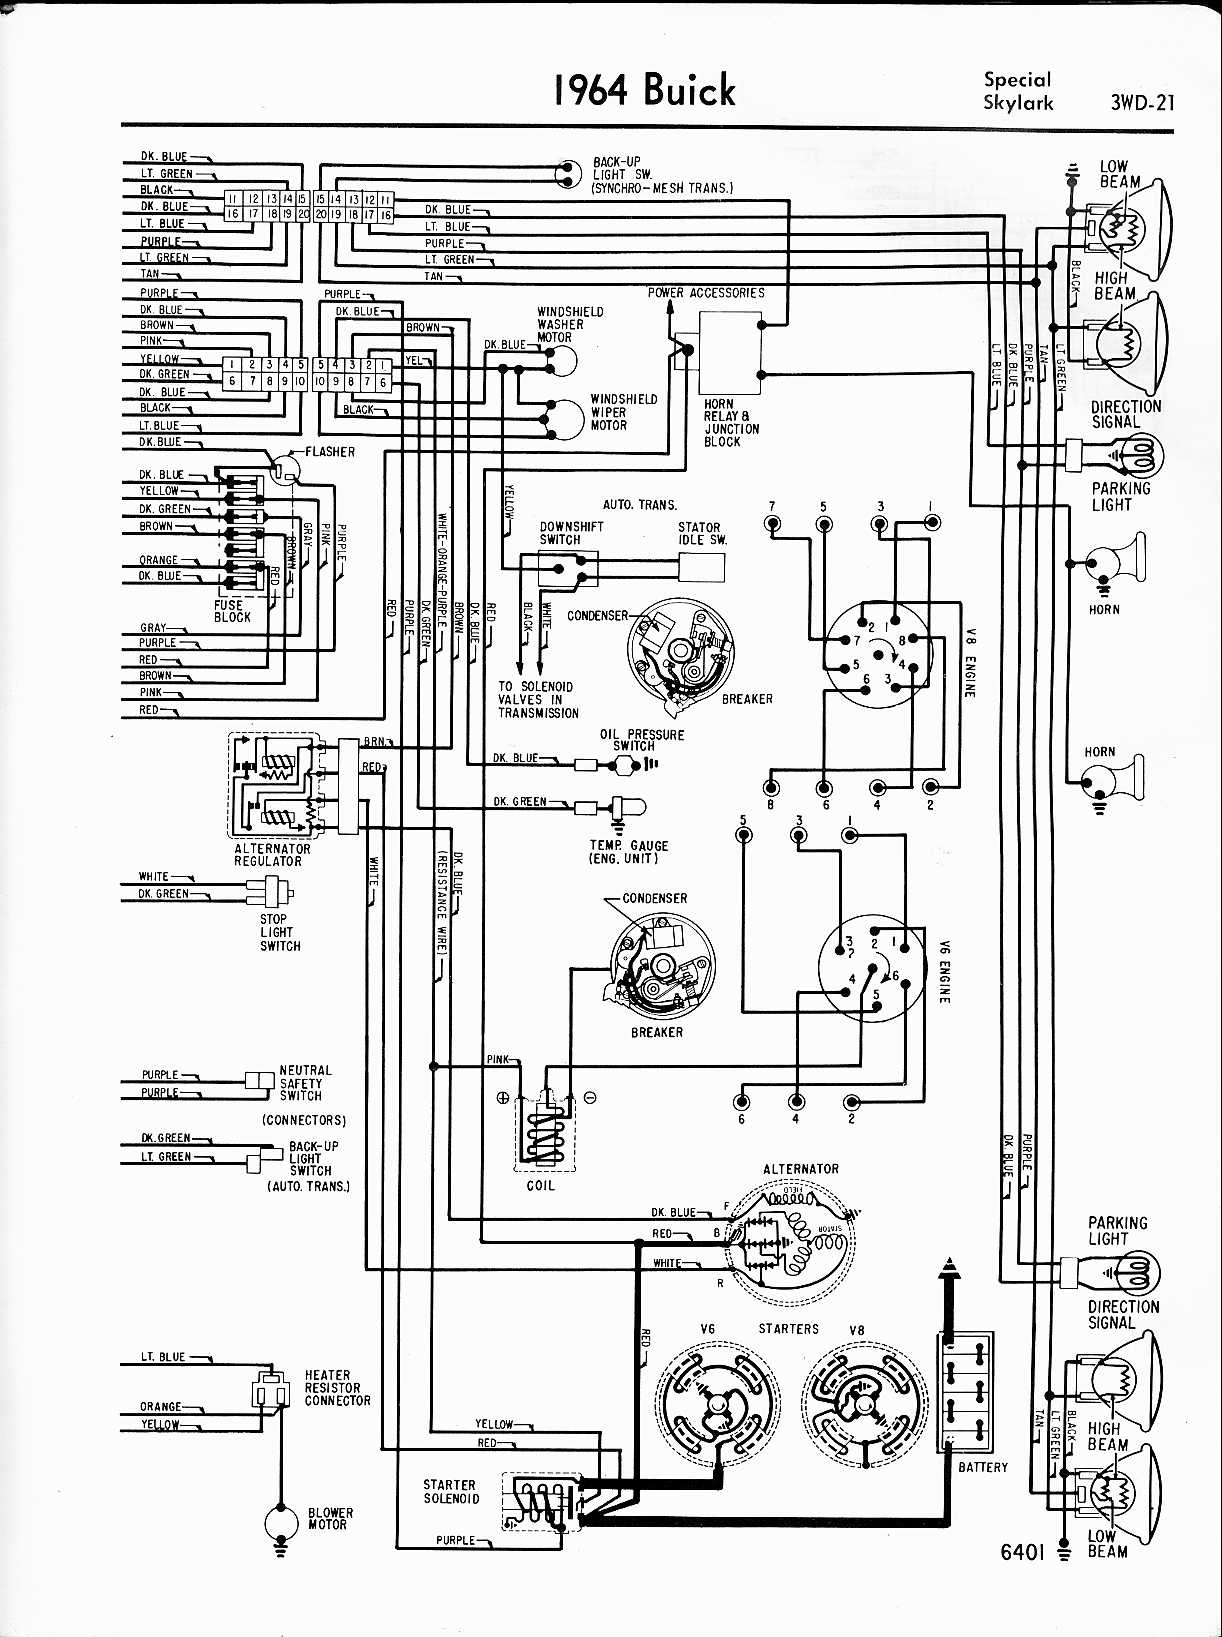 1960 buick wiring diagram wiring diagram general  1960 buick wiring diagram #11